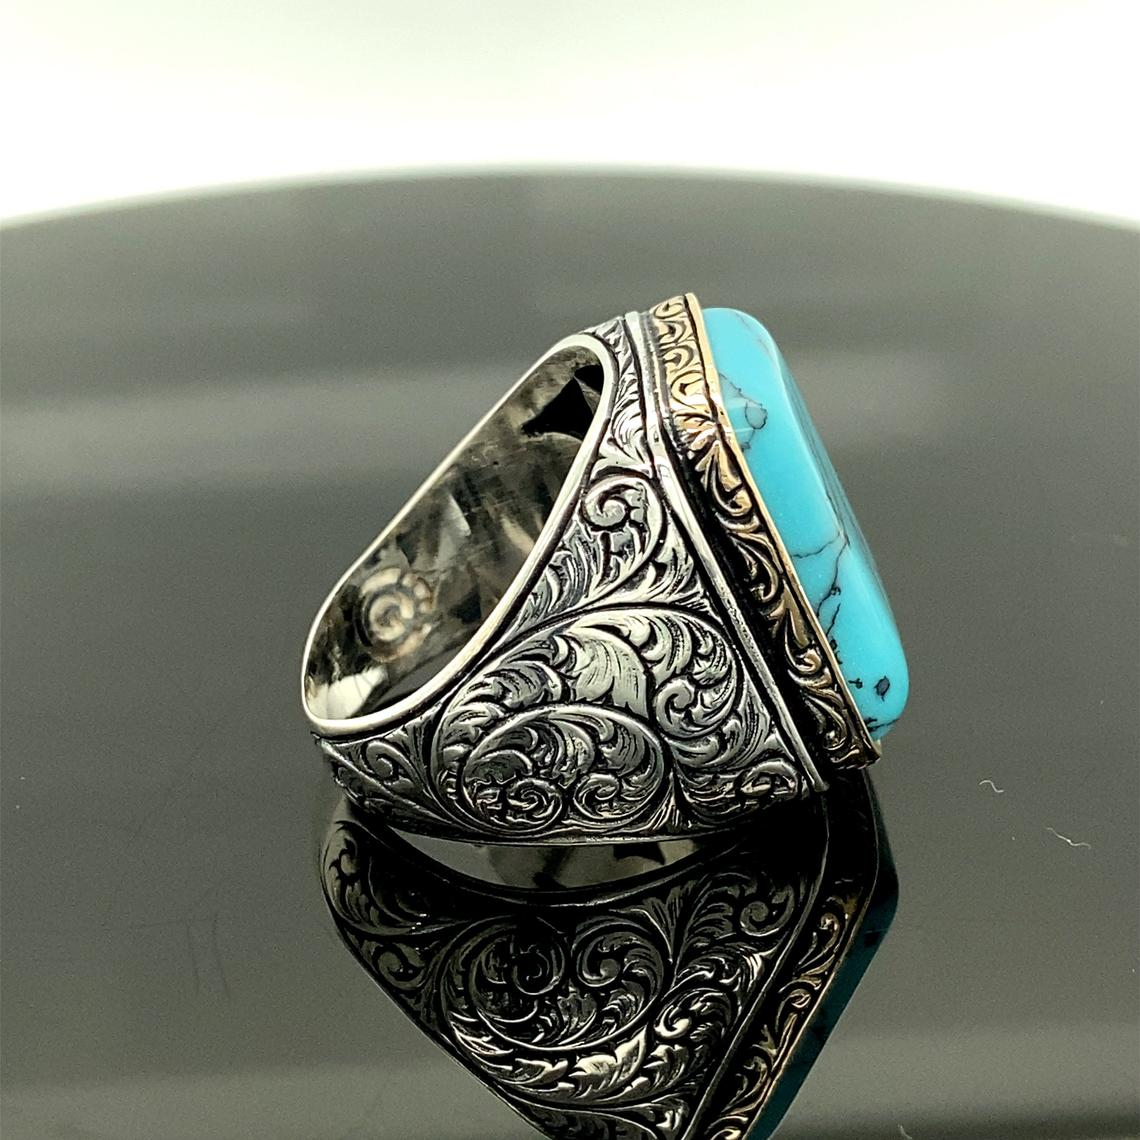 Get 925 Sterling Silver Natural White Stone Turquoise Ring, Ottoman Jewelry Handmade